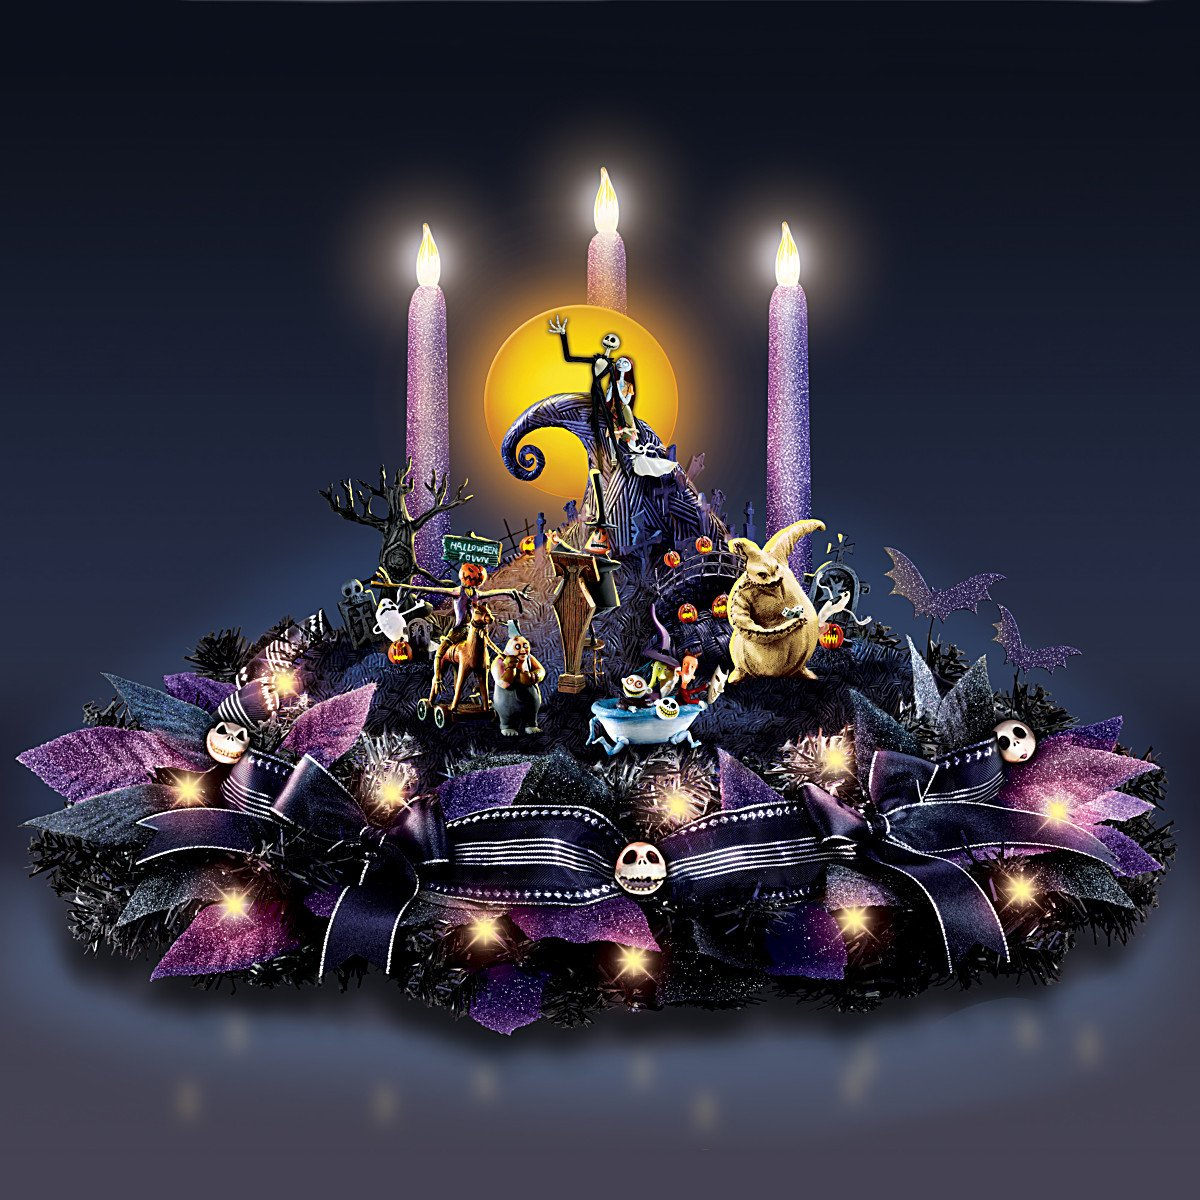 Amazon.com: Disney Nightmare Before Christmas Floral Centerpiece ...